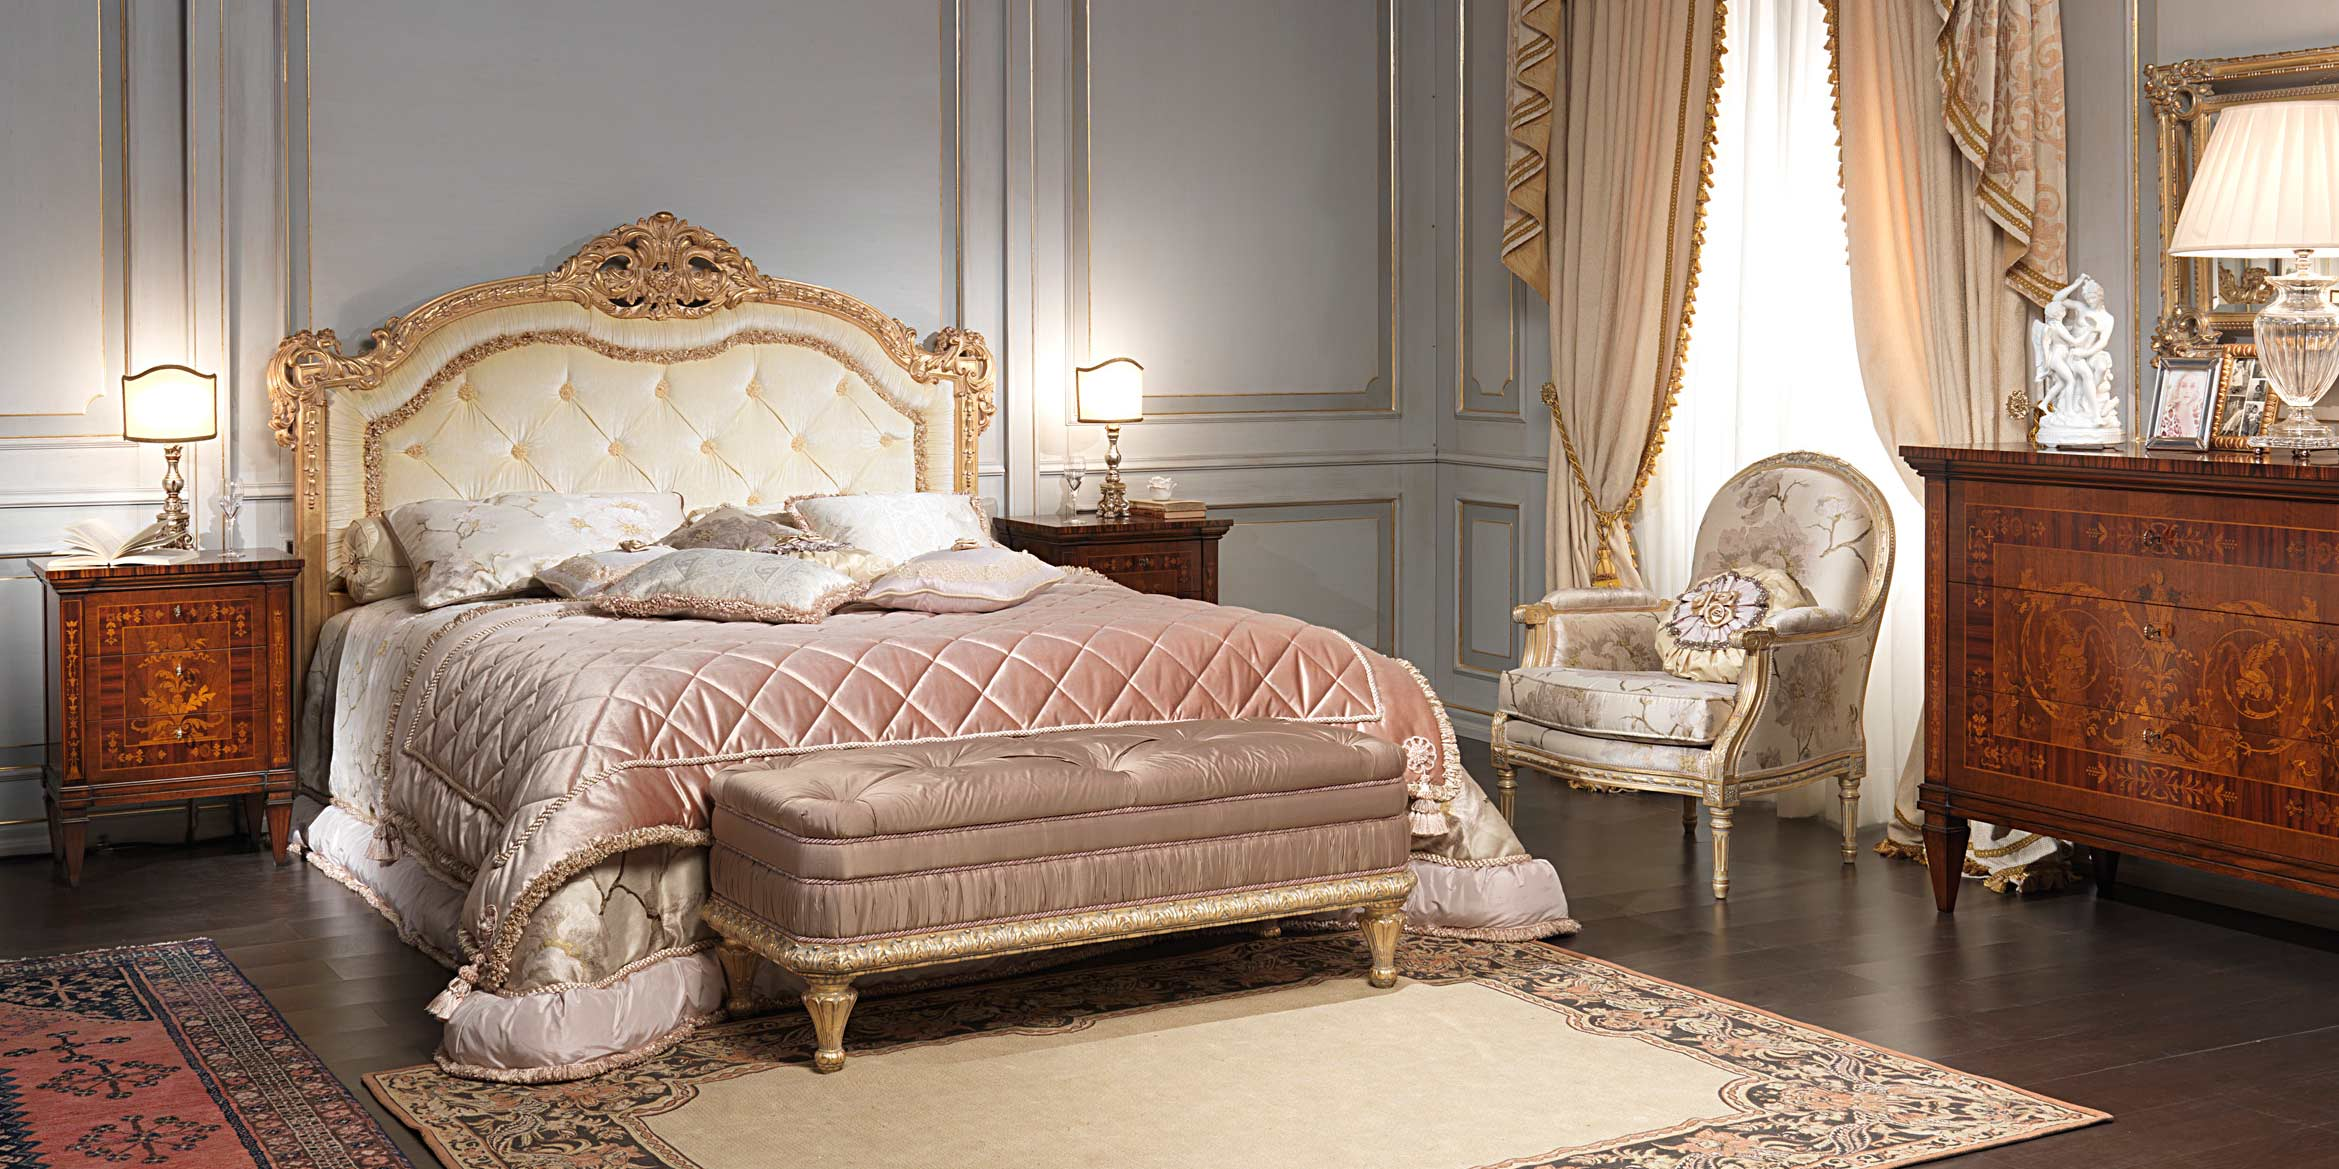 Classic Maggiolini Bedroom Bed Night Tables And Chest Of Drawers Vimercati Classic Furniture